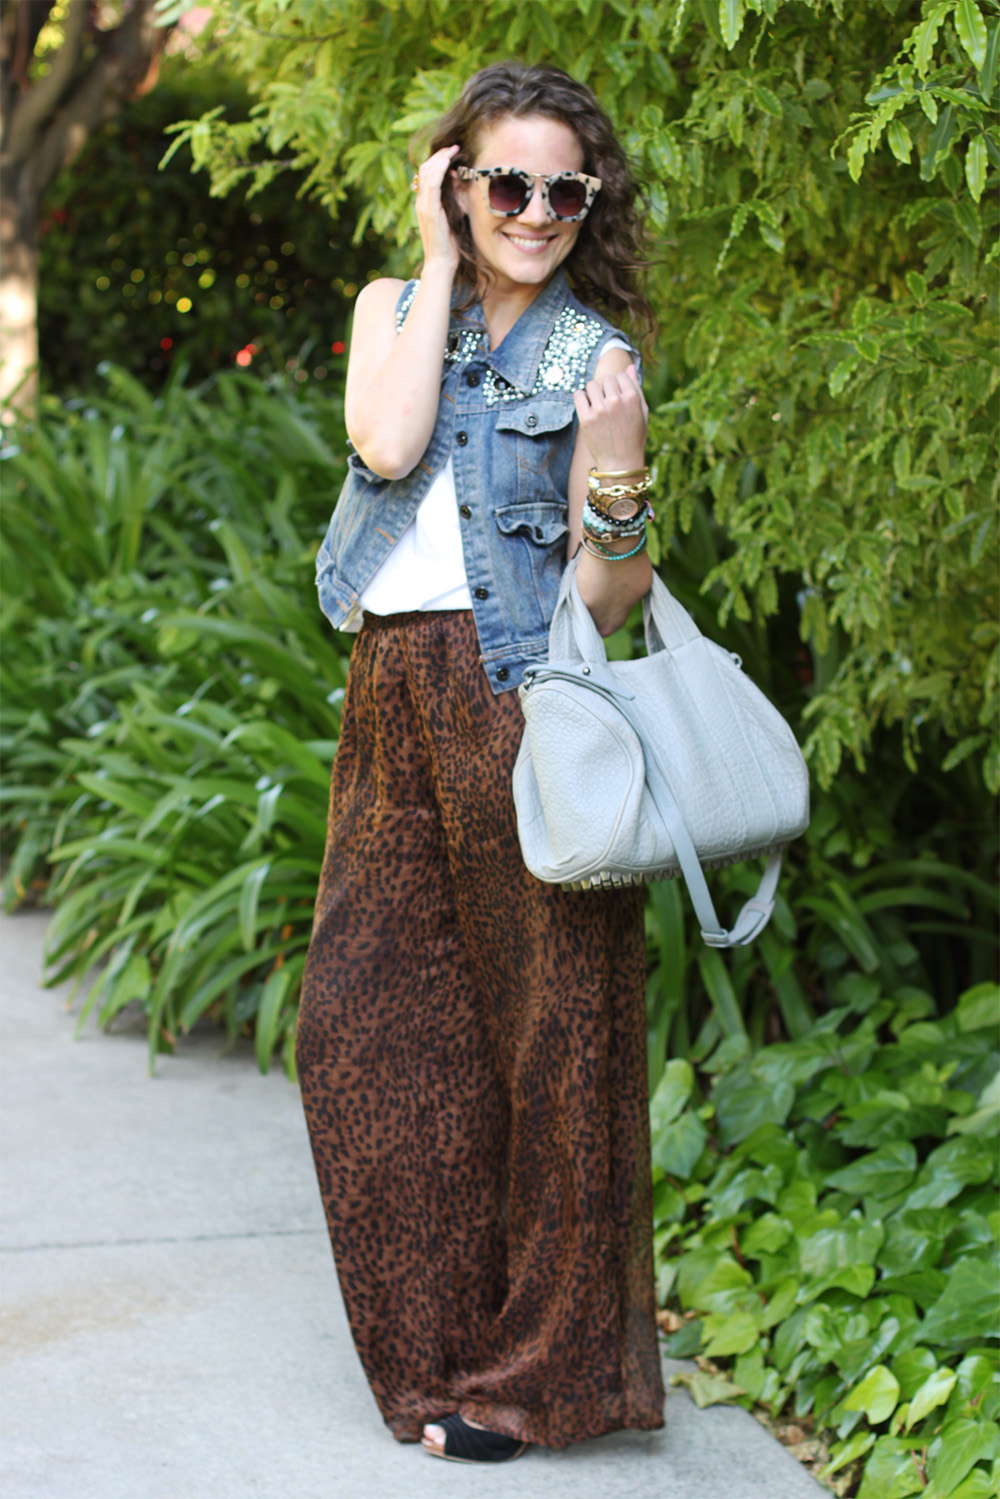 how to wear palazzo pants tip #1: Always elongate. A high waist and heels, and your legs are instantly a mile long.